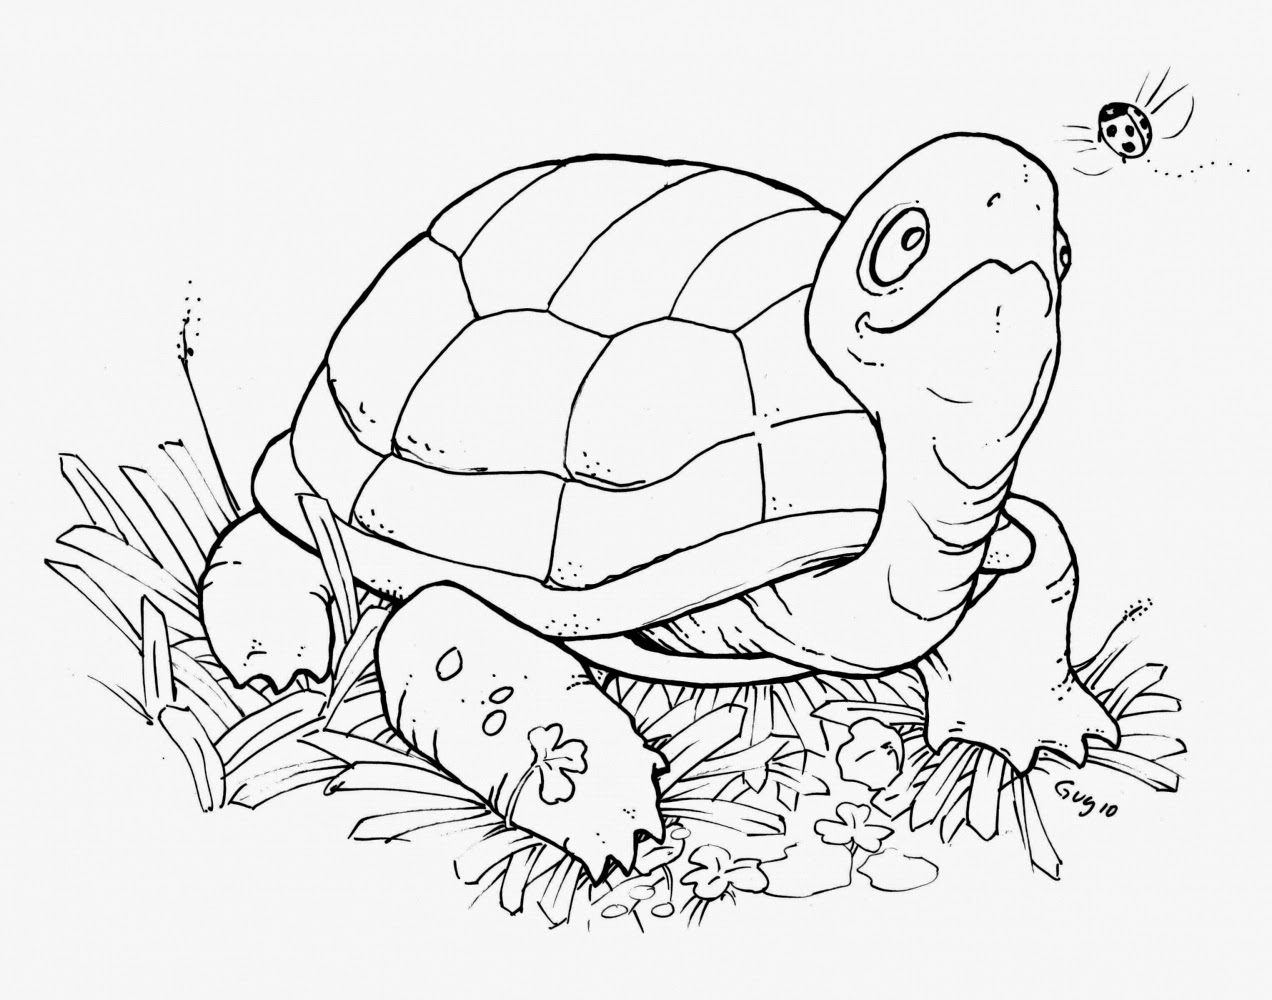 tortoise coloring page coloring pages turtles free printable coloring pages tortoise coloring page 1 1